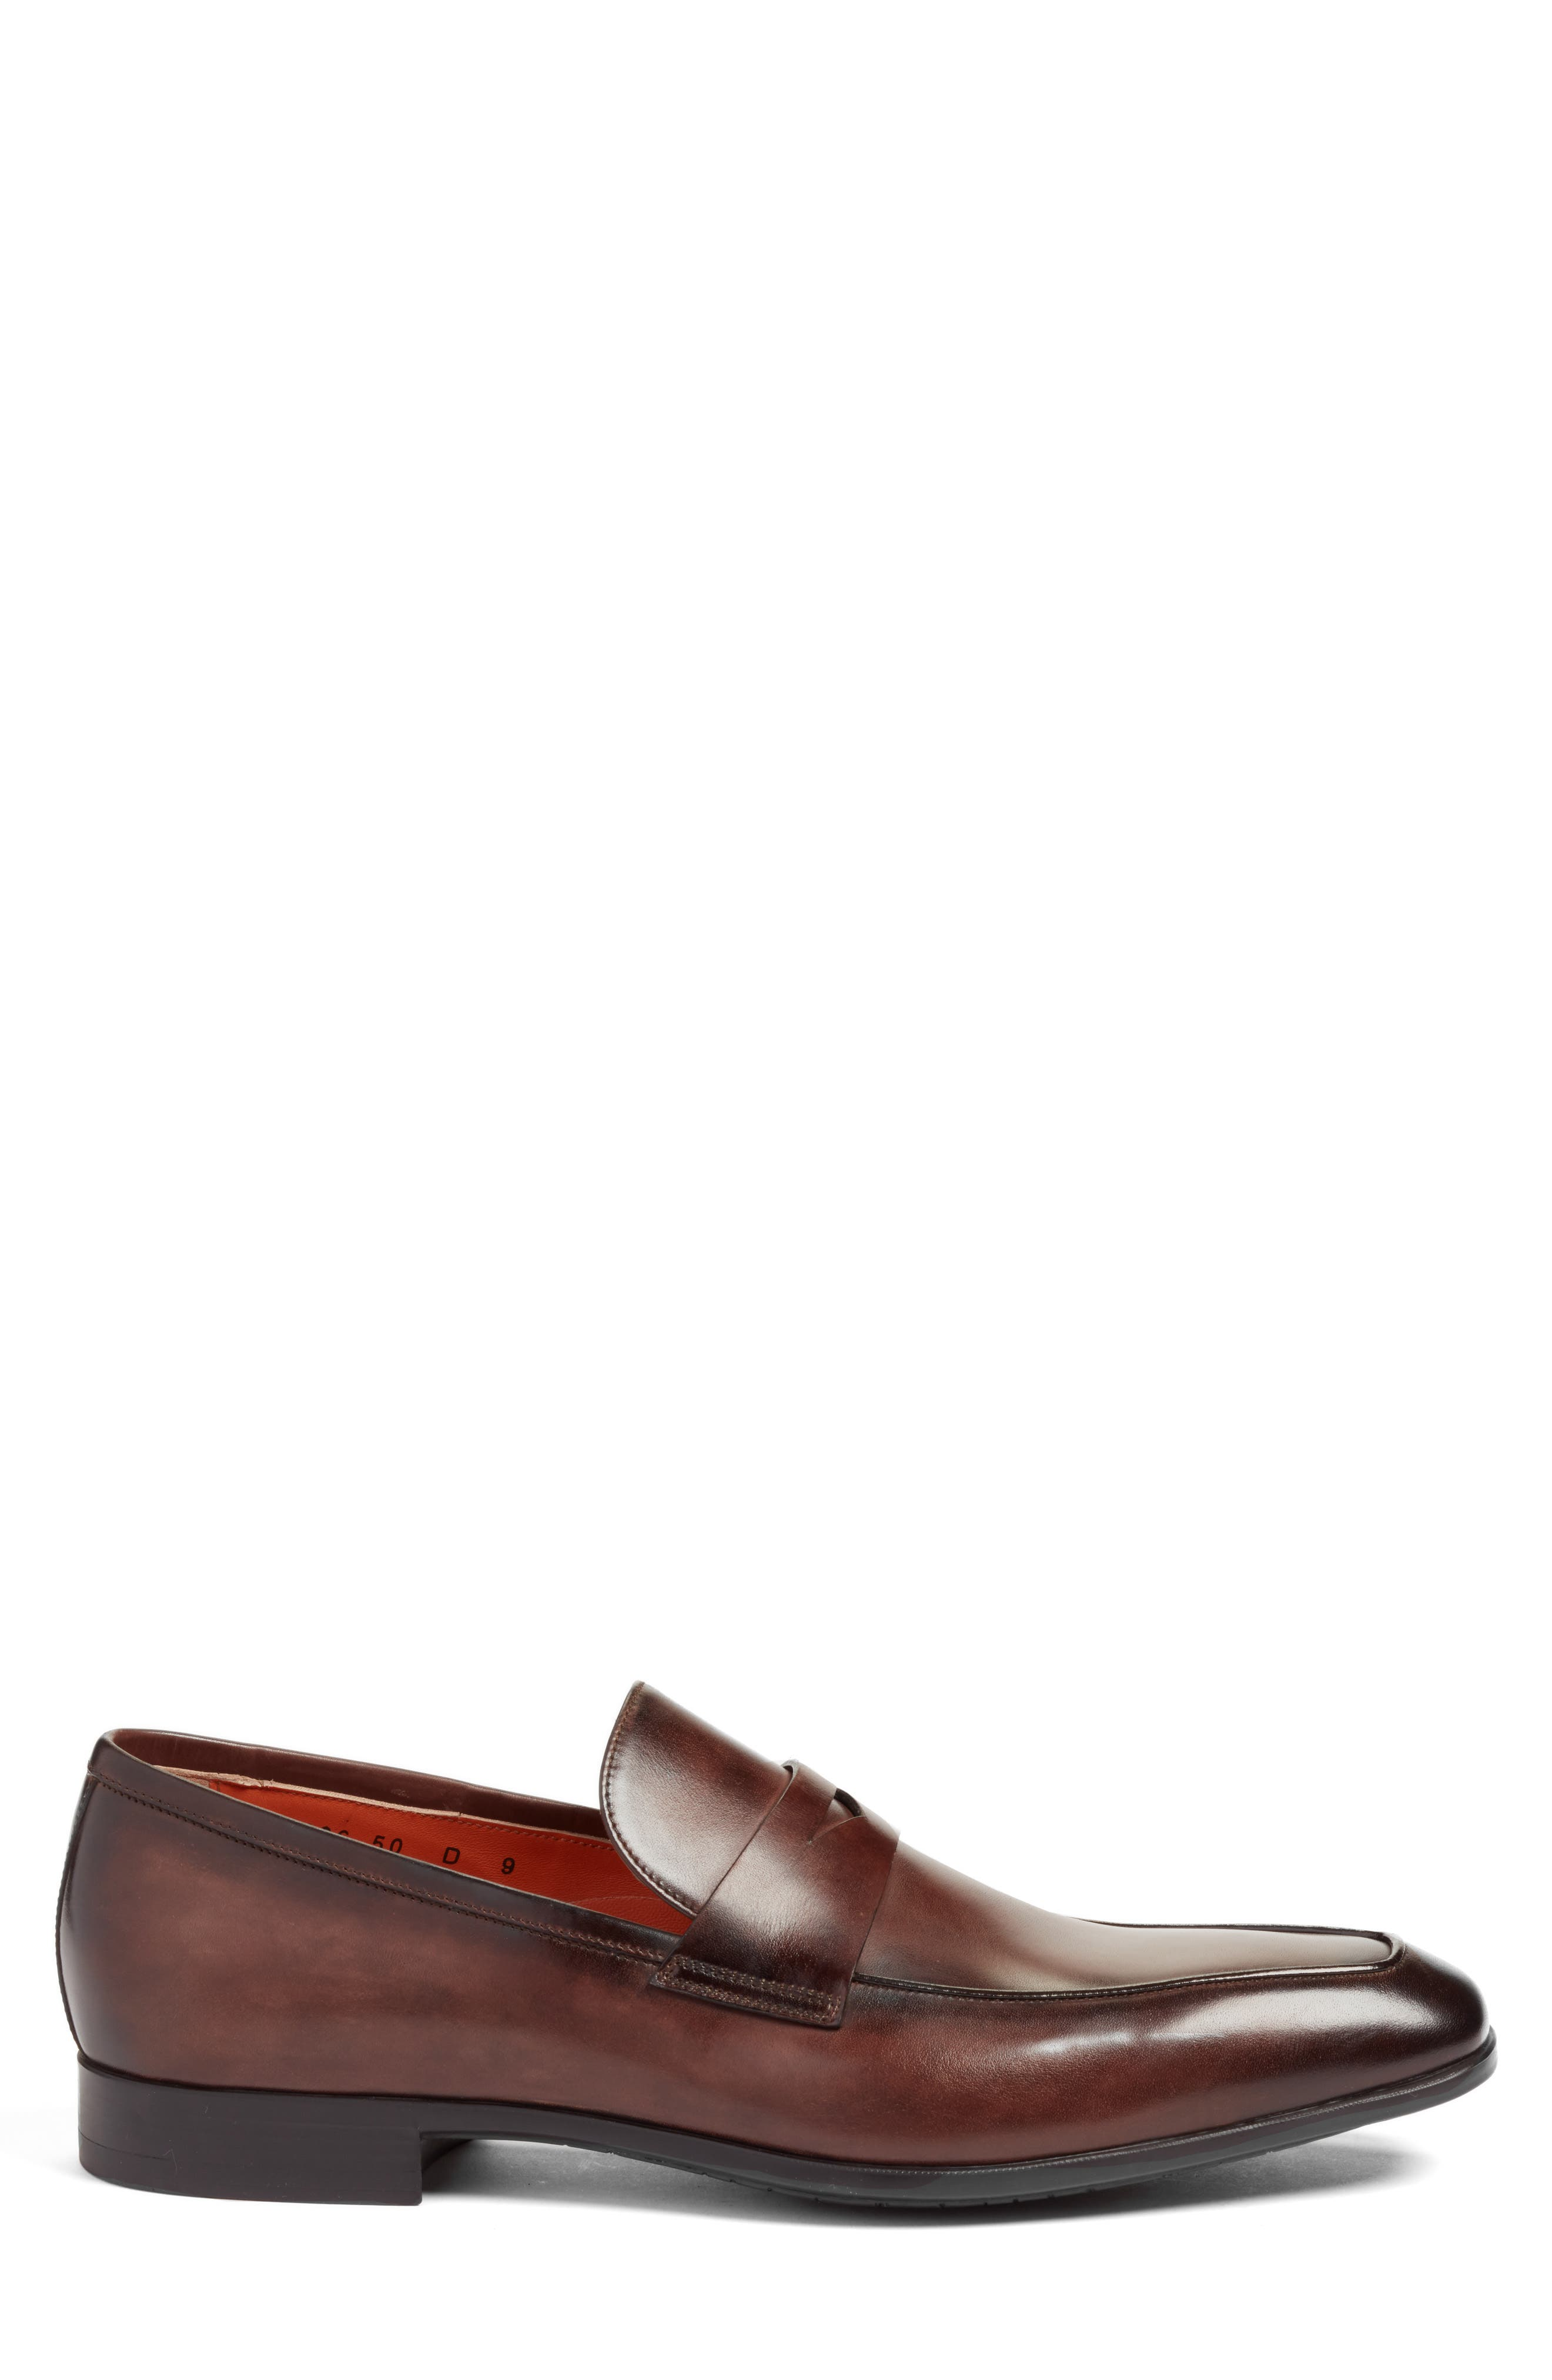 Fisk Square Toe Penny Loafer,                             Alternate thumbnail 3, color,                             BROWN LEATHER